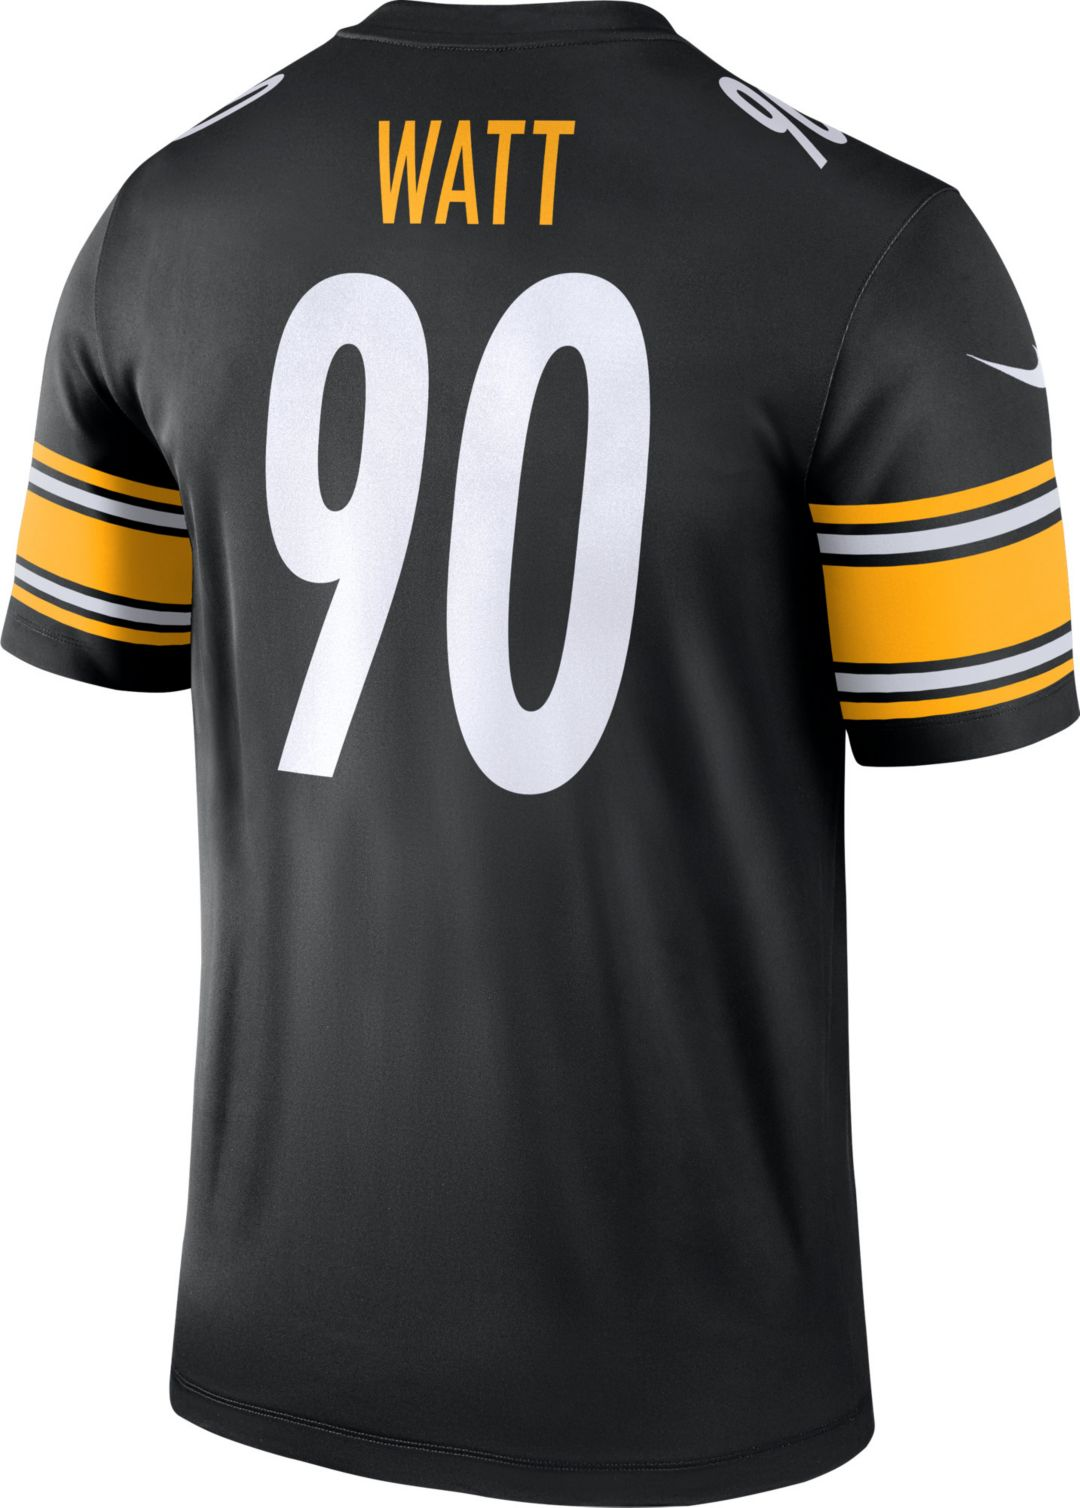 brand new dfc88 5b6a9 Nike Men's Home Legend Jersey Pittsburgh Steelers T.J. Watt #90